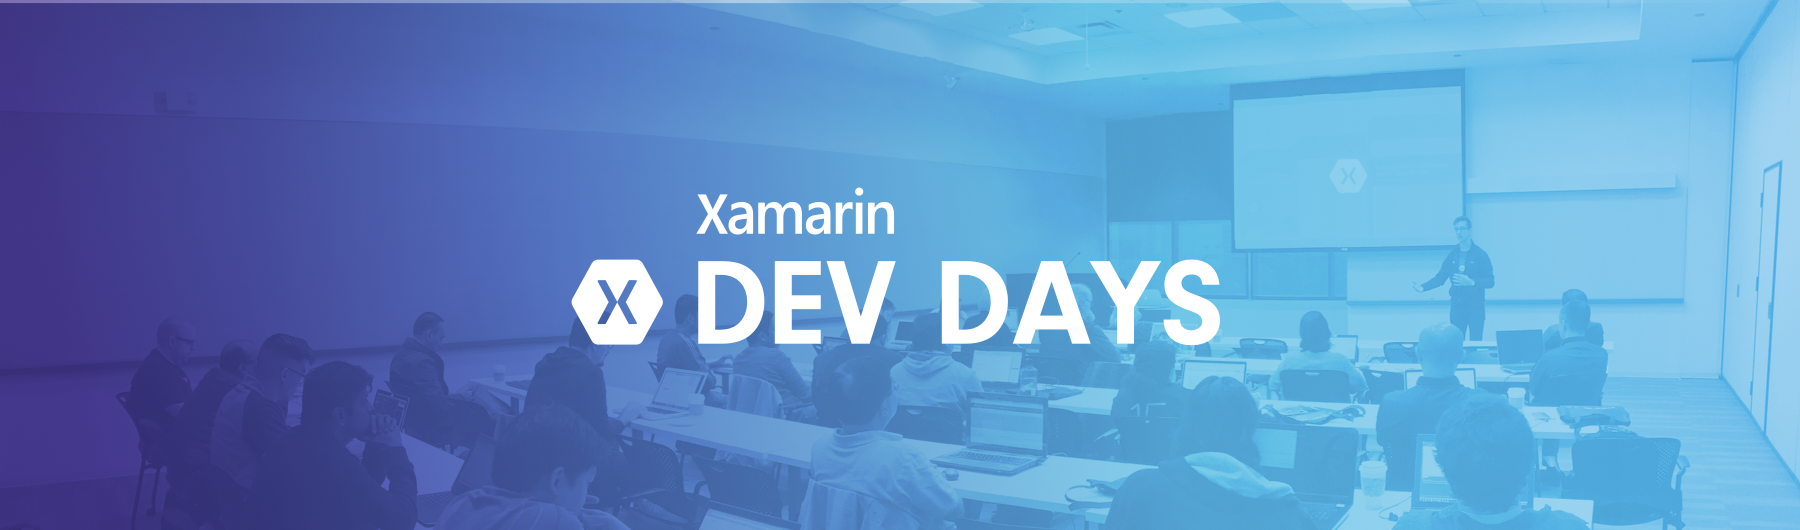 Xamarin Dev Days - Celaya